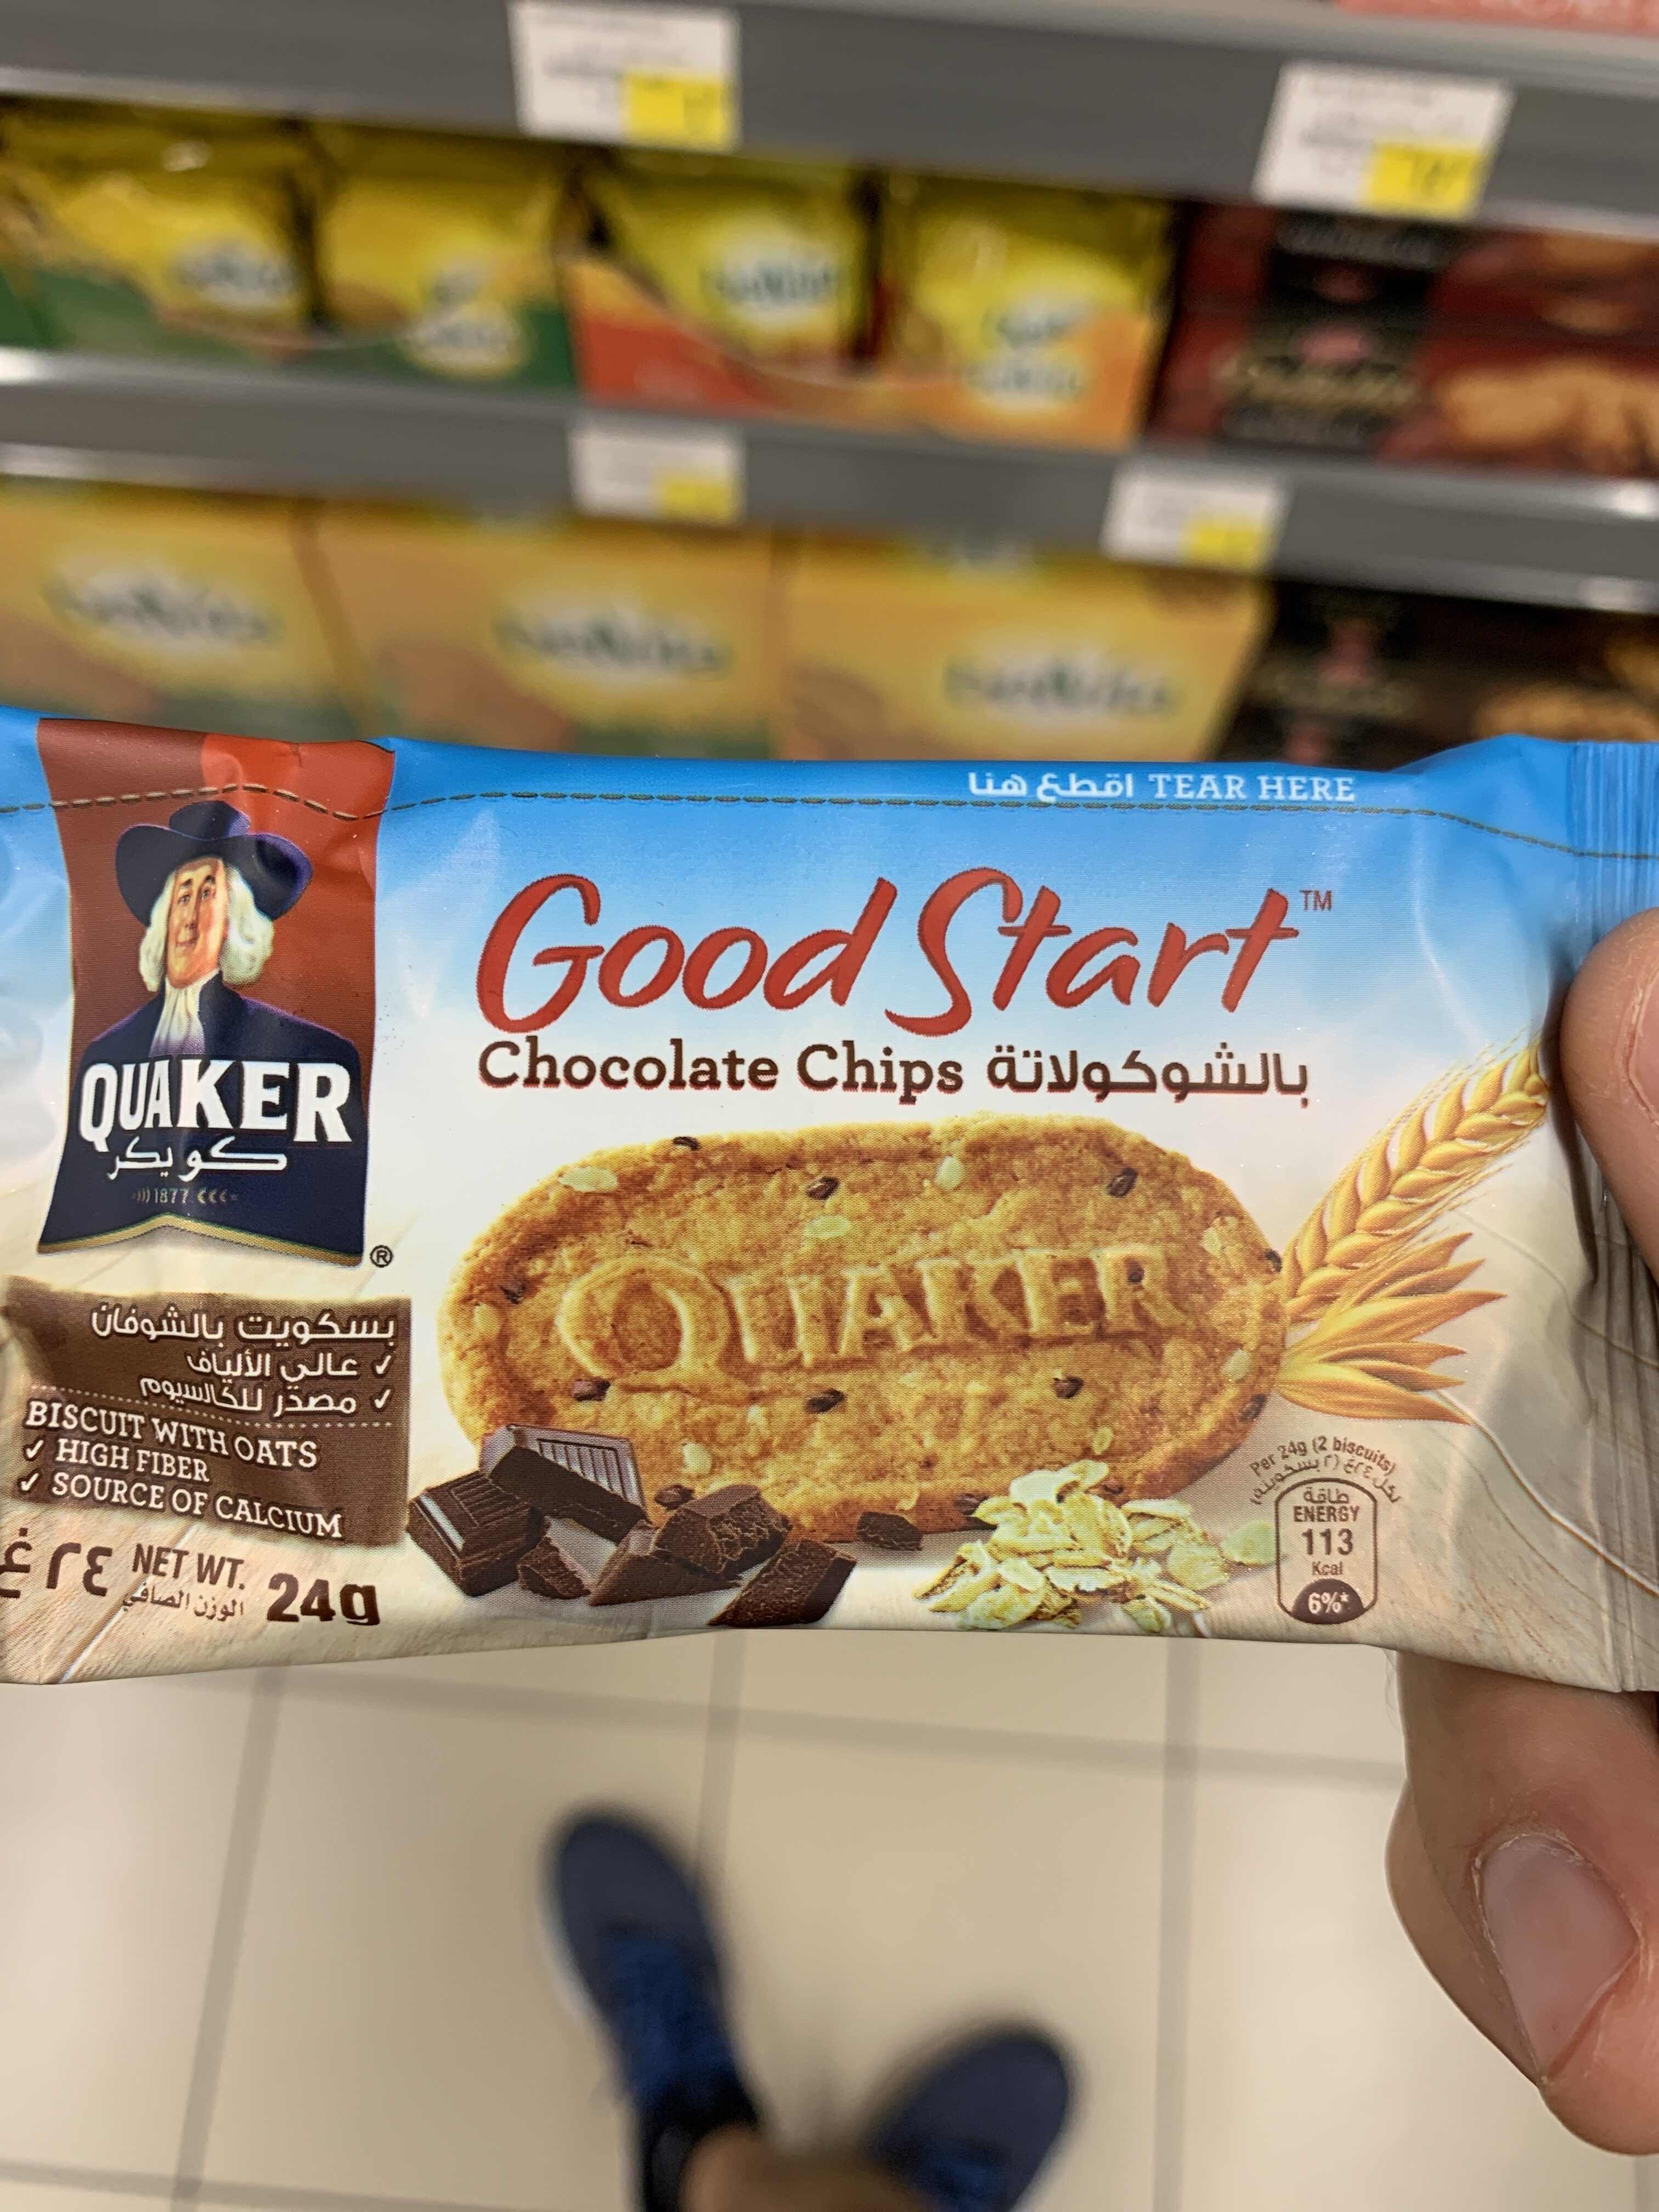 Good start chocolate chips - Product - en